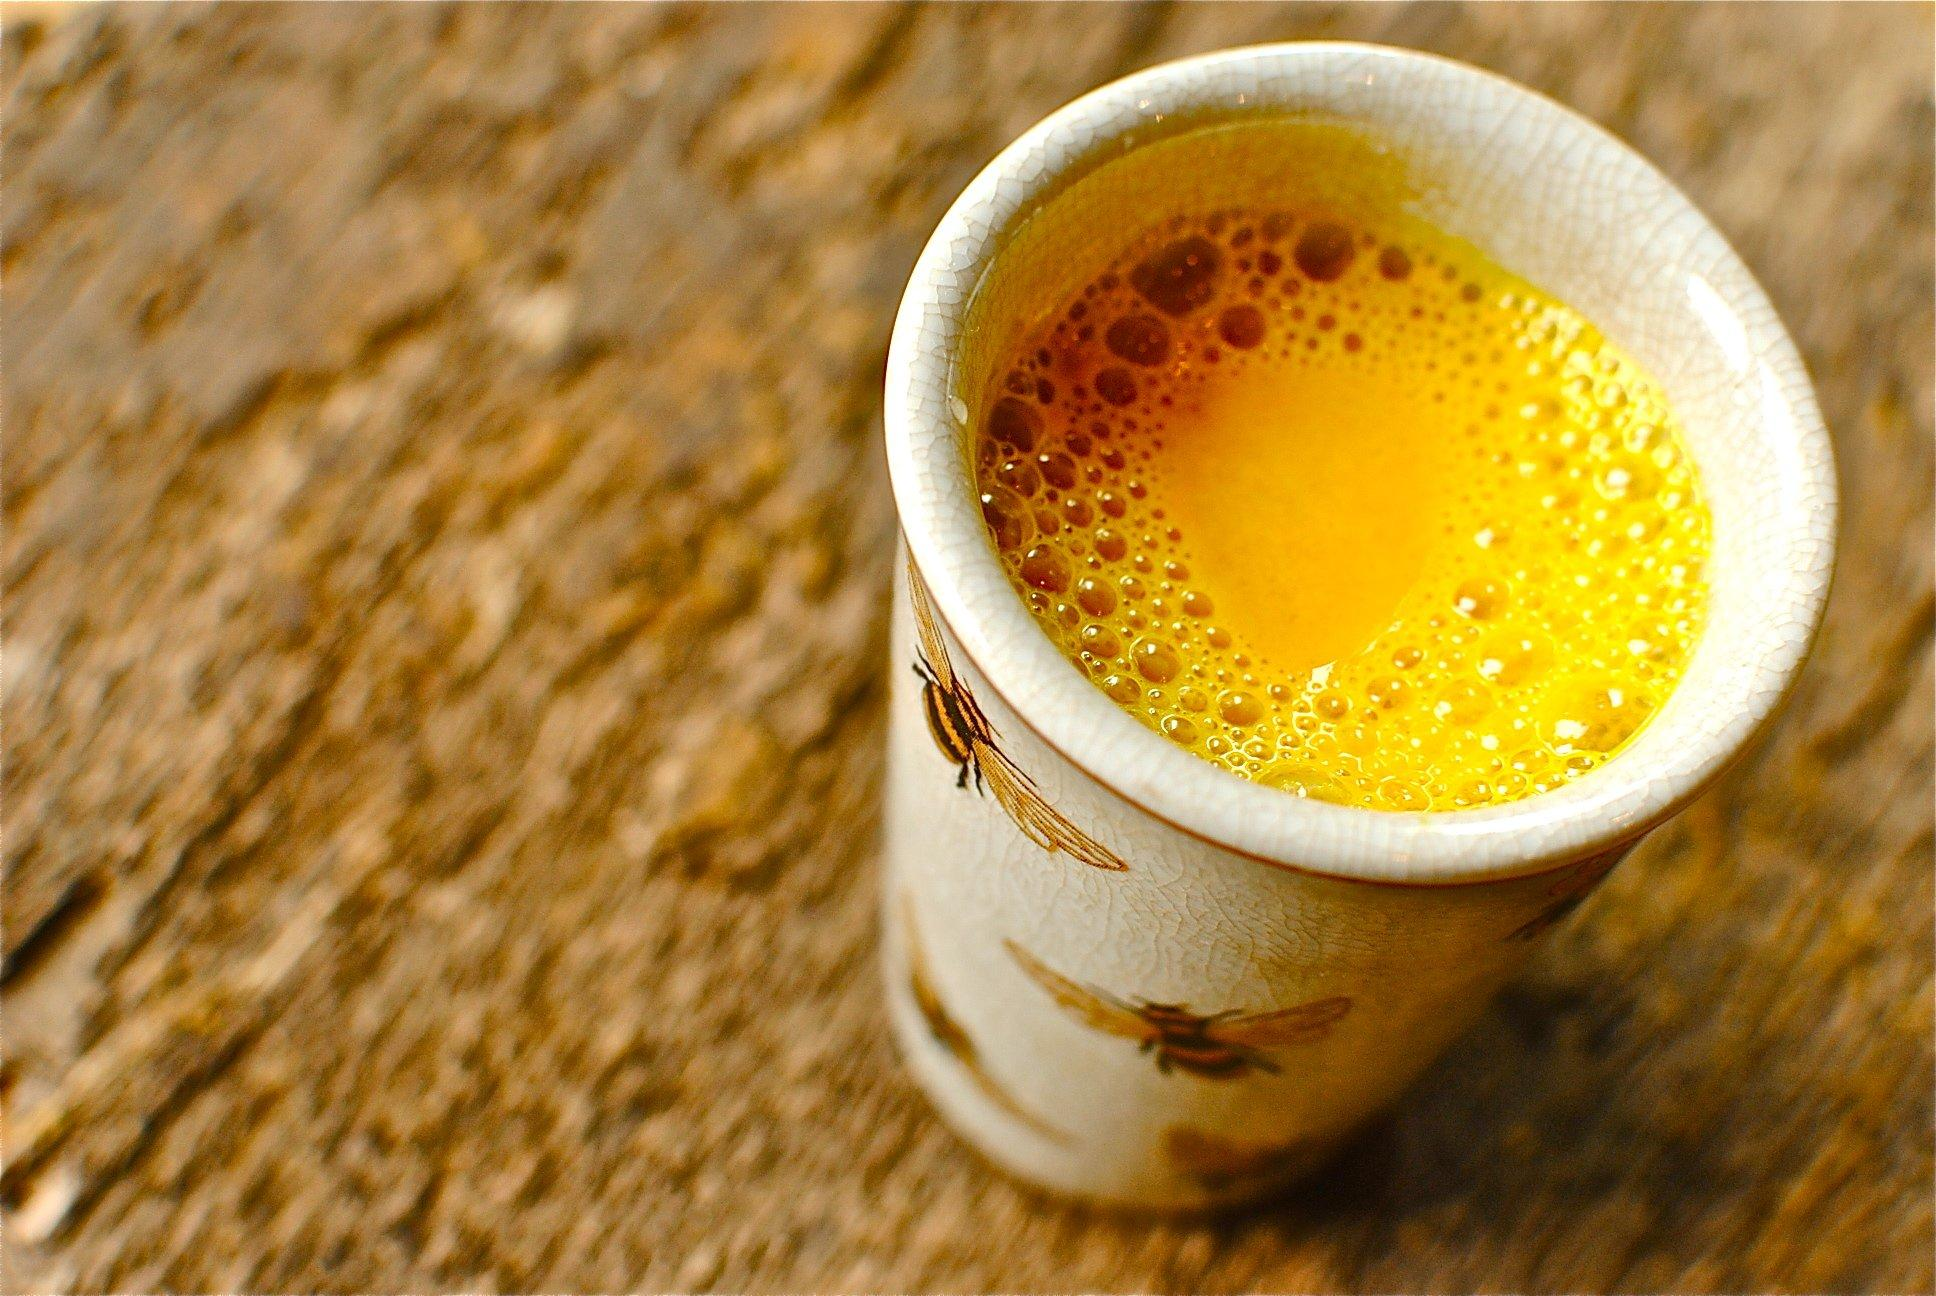 A 5-Minute Turmeric Tea Recipe to Boost Your Immunity